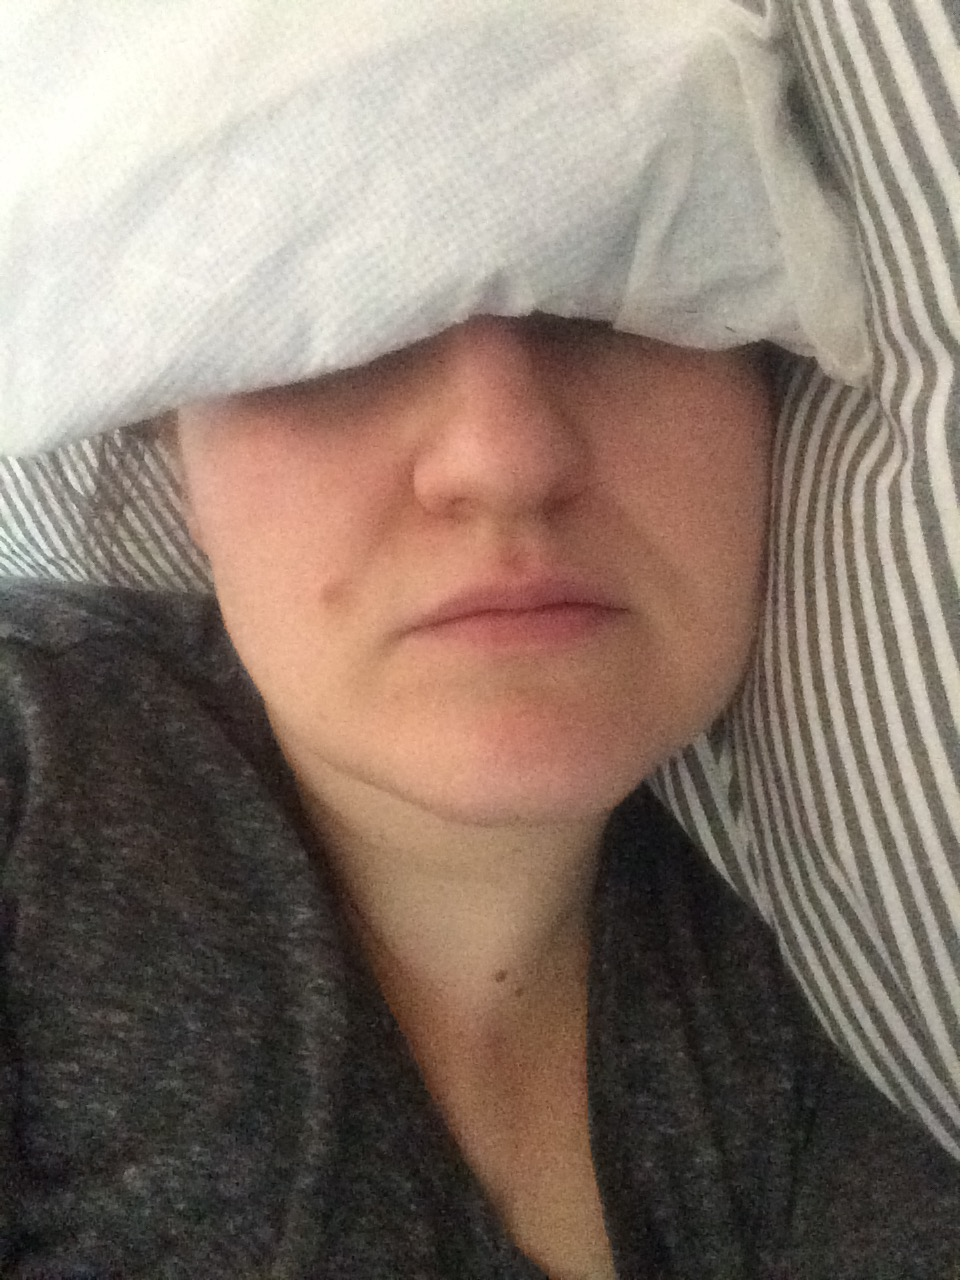 This is how I've spent the last week - ice pack over my forehead/bridge of my nose, lights out and so unhappy.